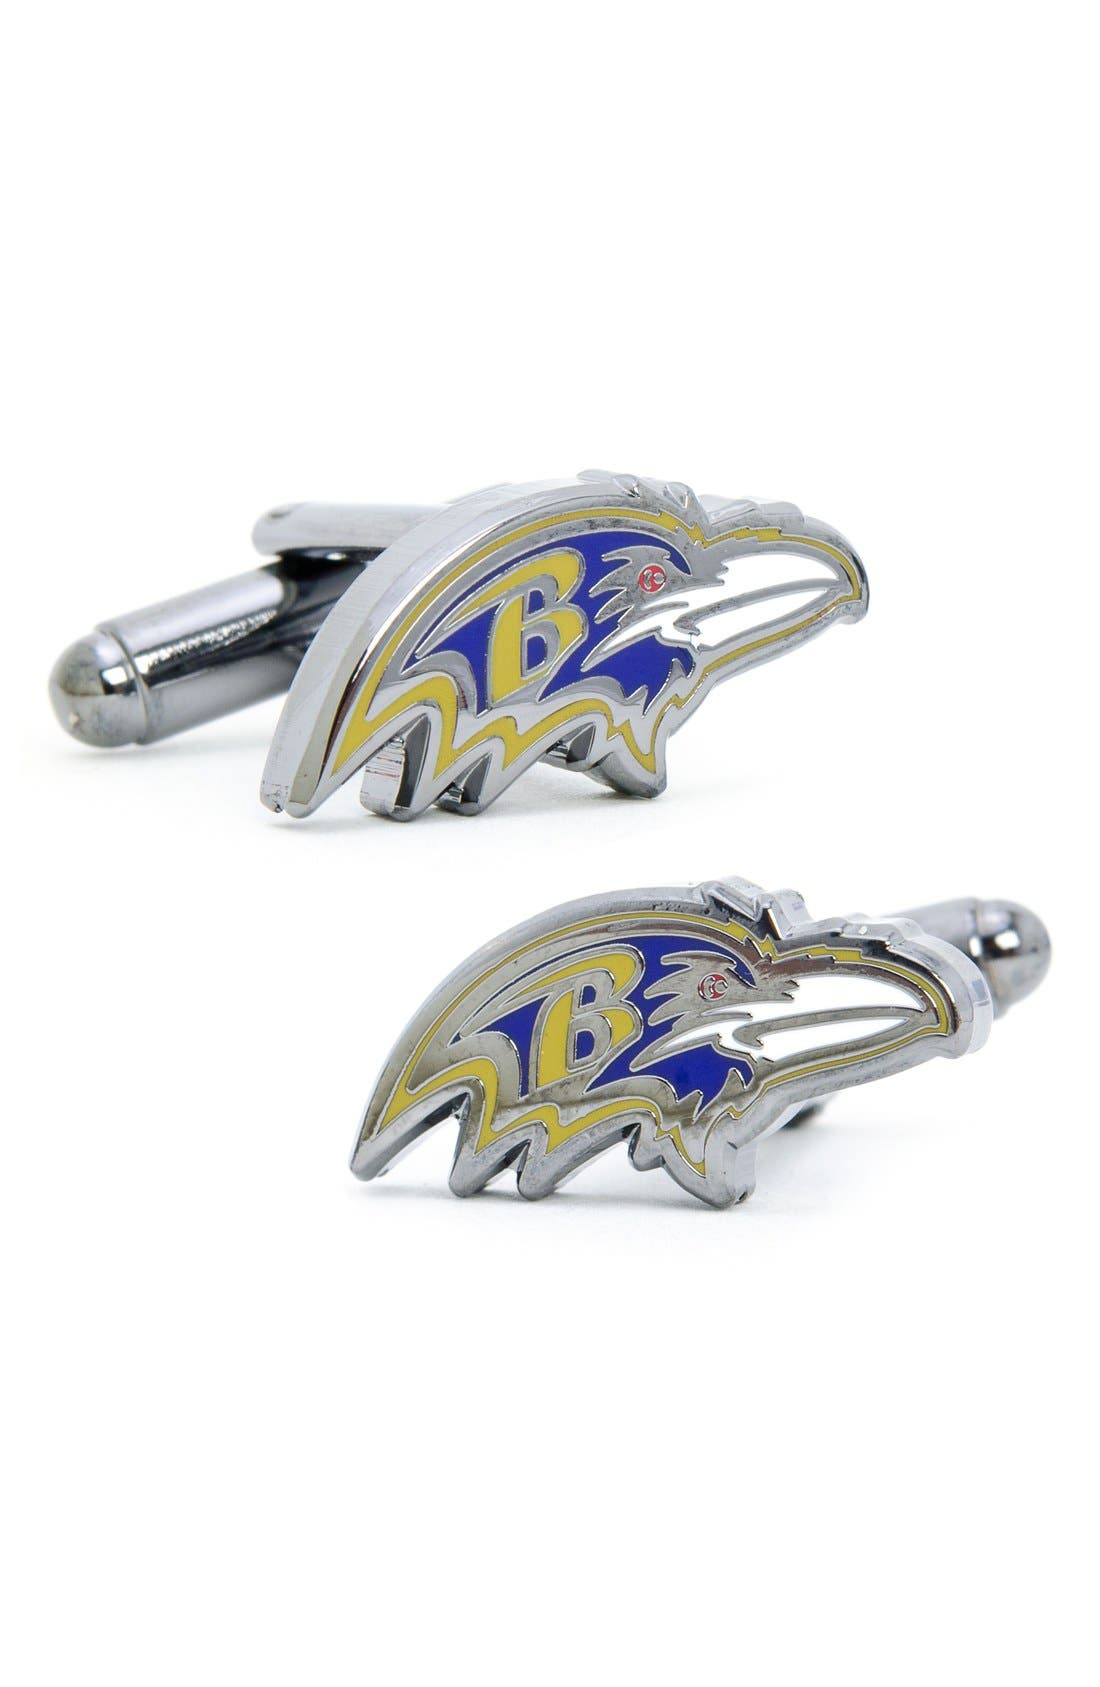 Cufflinks, Inc. 'Baltimore Ravens' Cuff Links